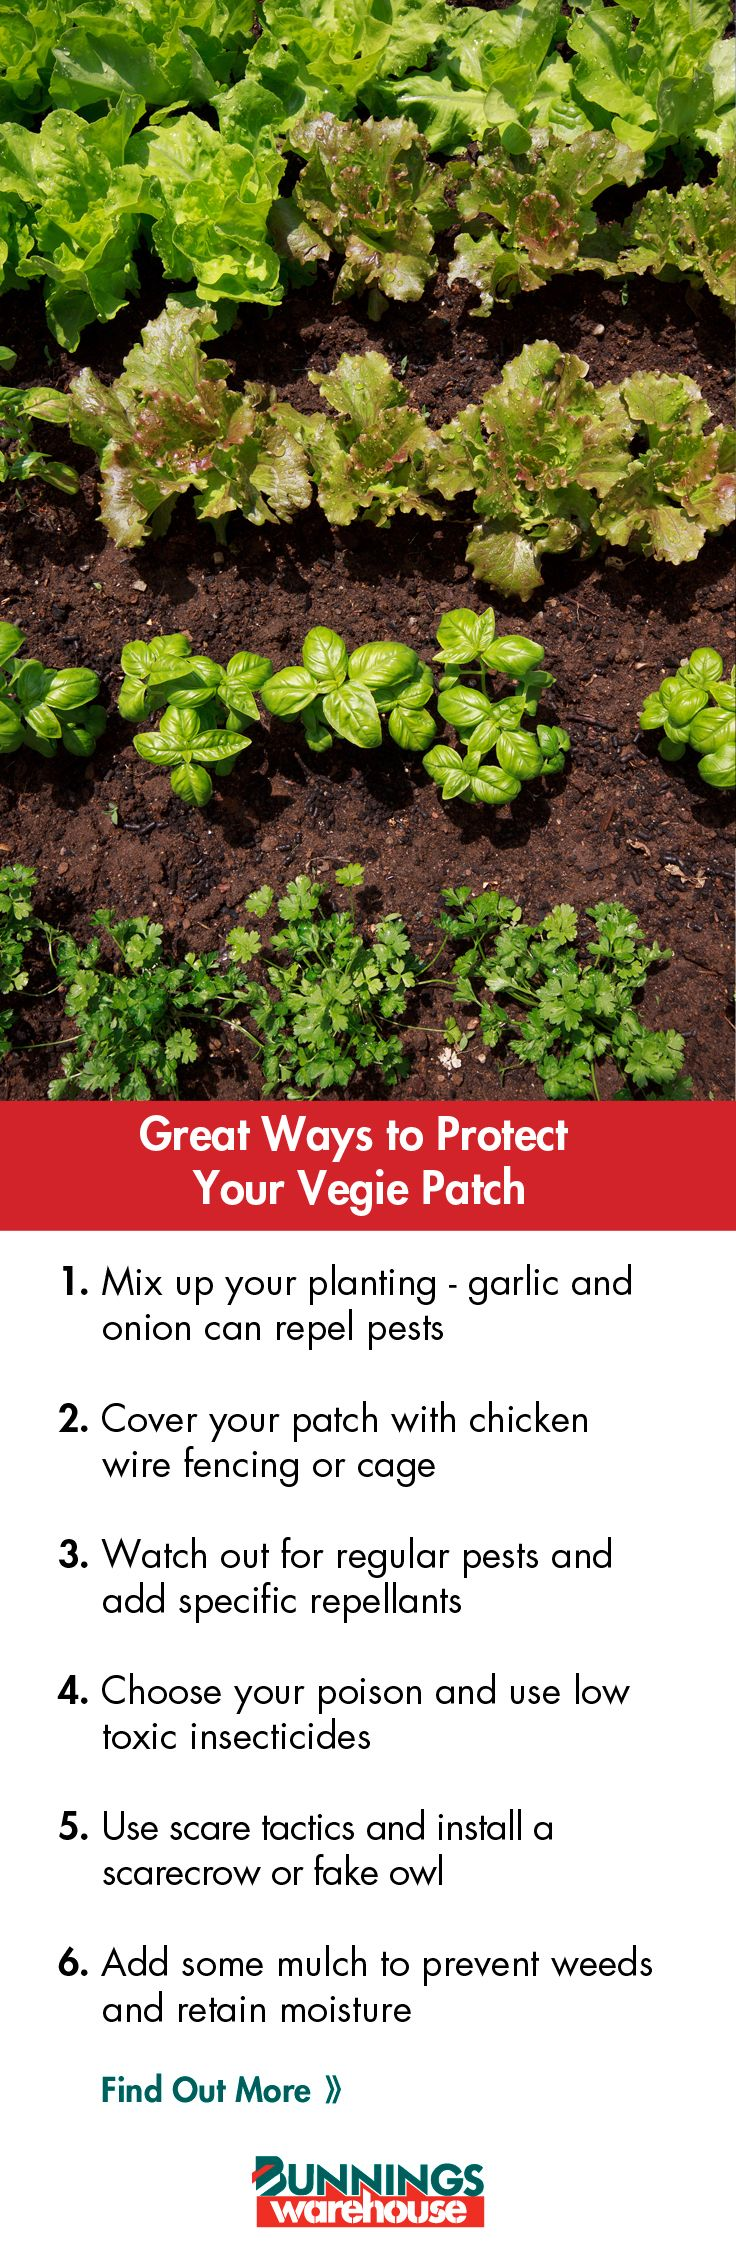 Here's our handy guide on protecting your #vegiegarden this #Autumn